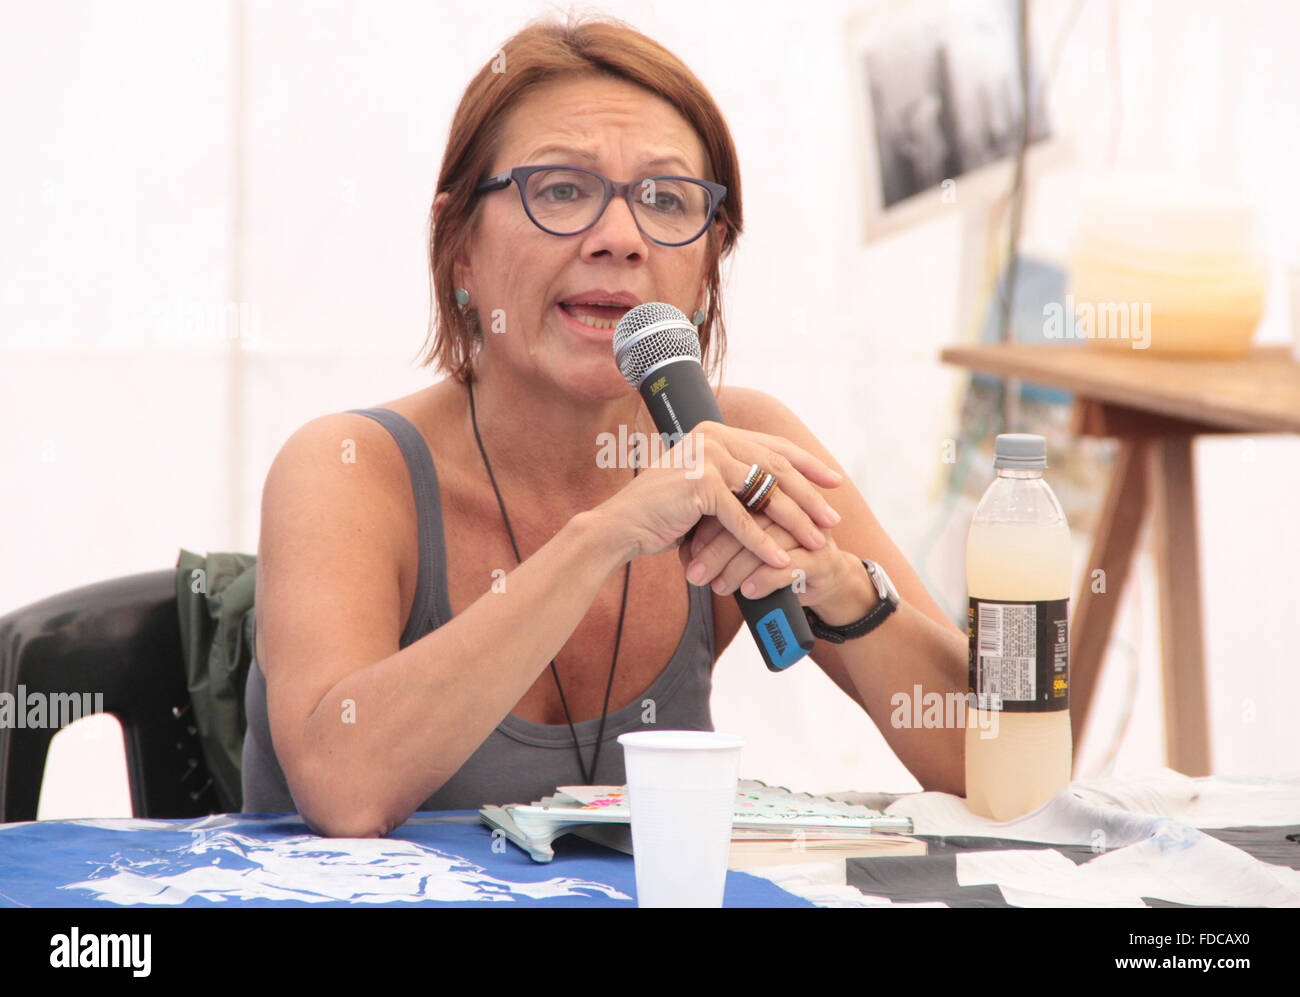 Buenos Aires, Argentina. 29th Jan, 2016. People camping in Plaza de Mayo in front of Casa Rosada claiming for free of social activist Milagro Sala detained in Jujuy. Credit:  Néstor J. Beremblum/Alamy Live News Stock Photo